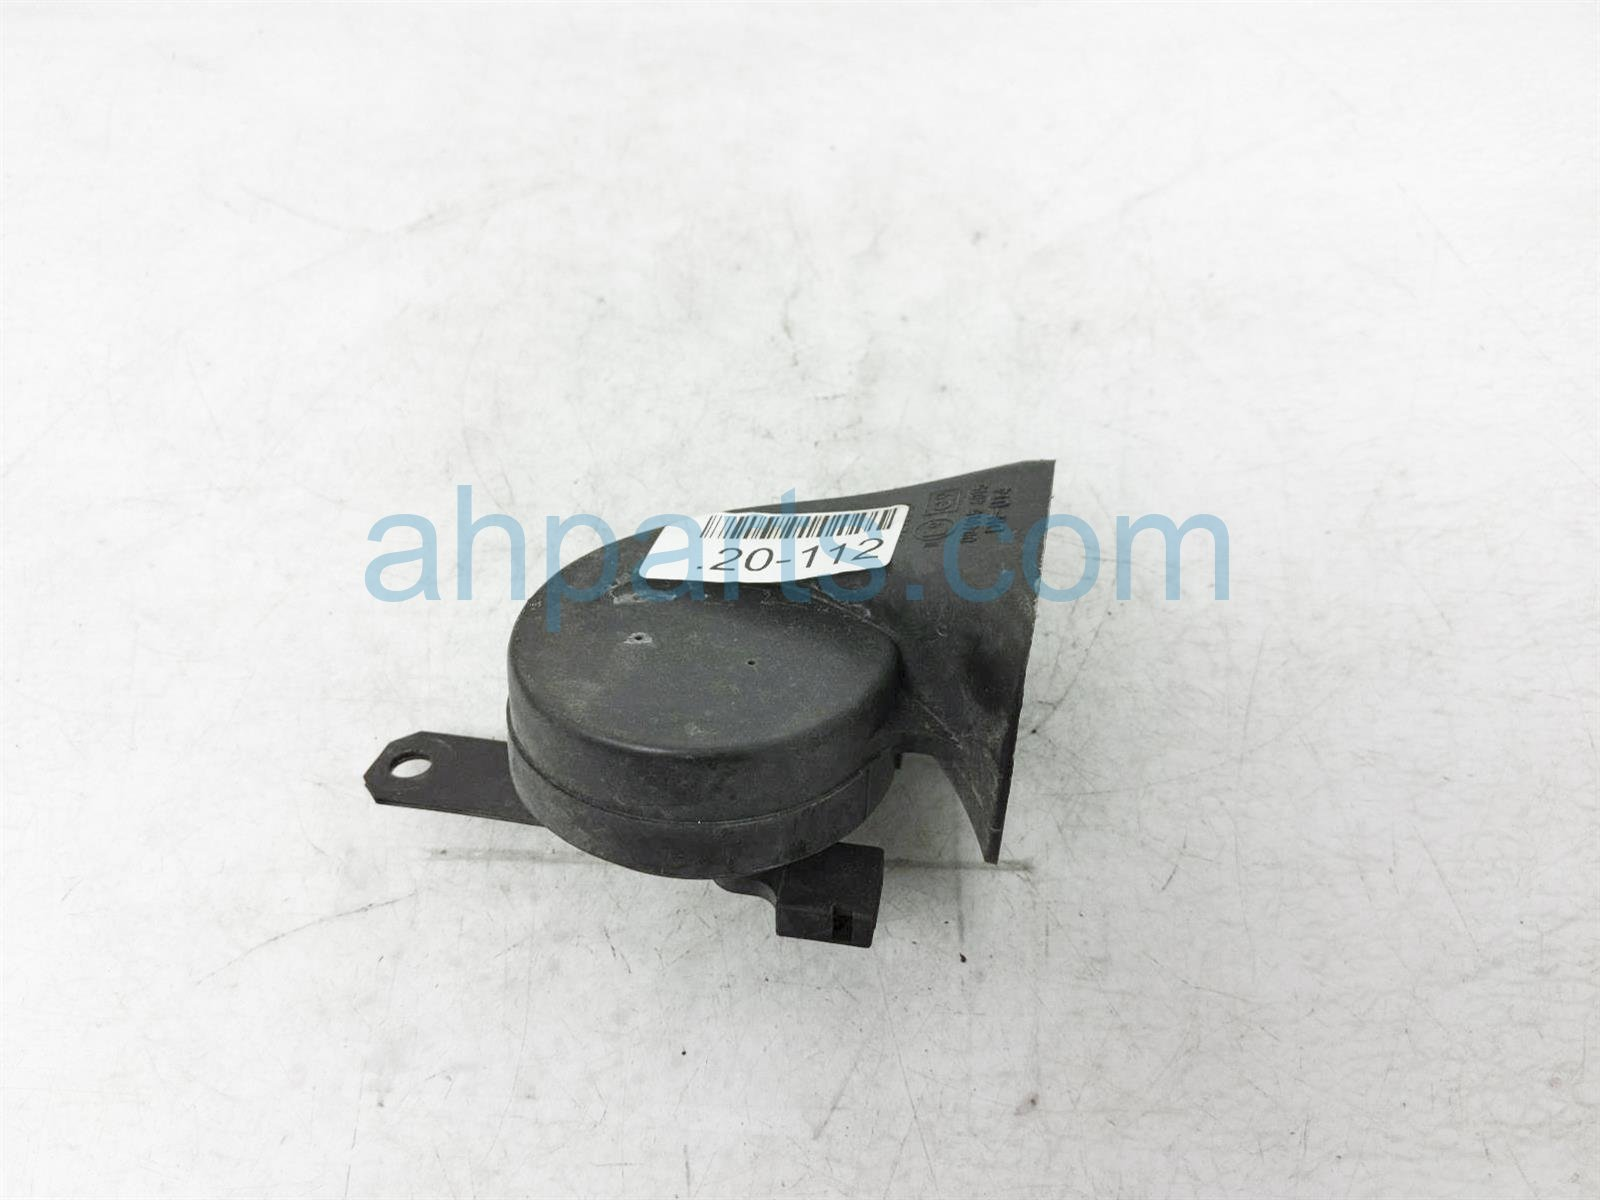 2013 Toyota Sienna Low Note Horn 86520 0C030 Replacement